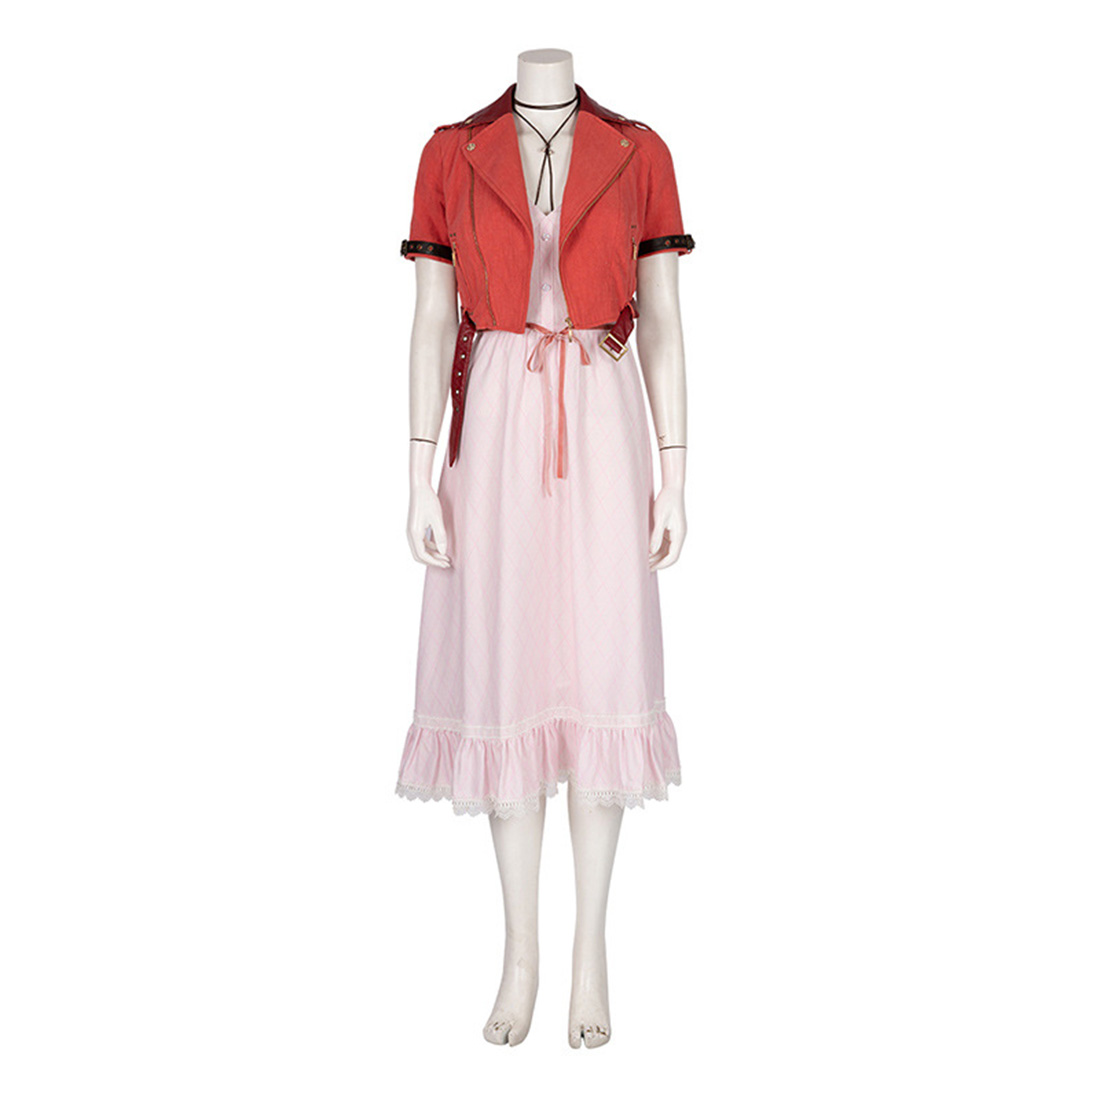 Aerith Dress Cosplay Costume Full Set For Women Fashion Female Cosplay Party Christmas Wigs Birthday Gifts - XXXL XXL XL L M S